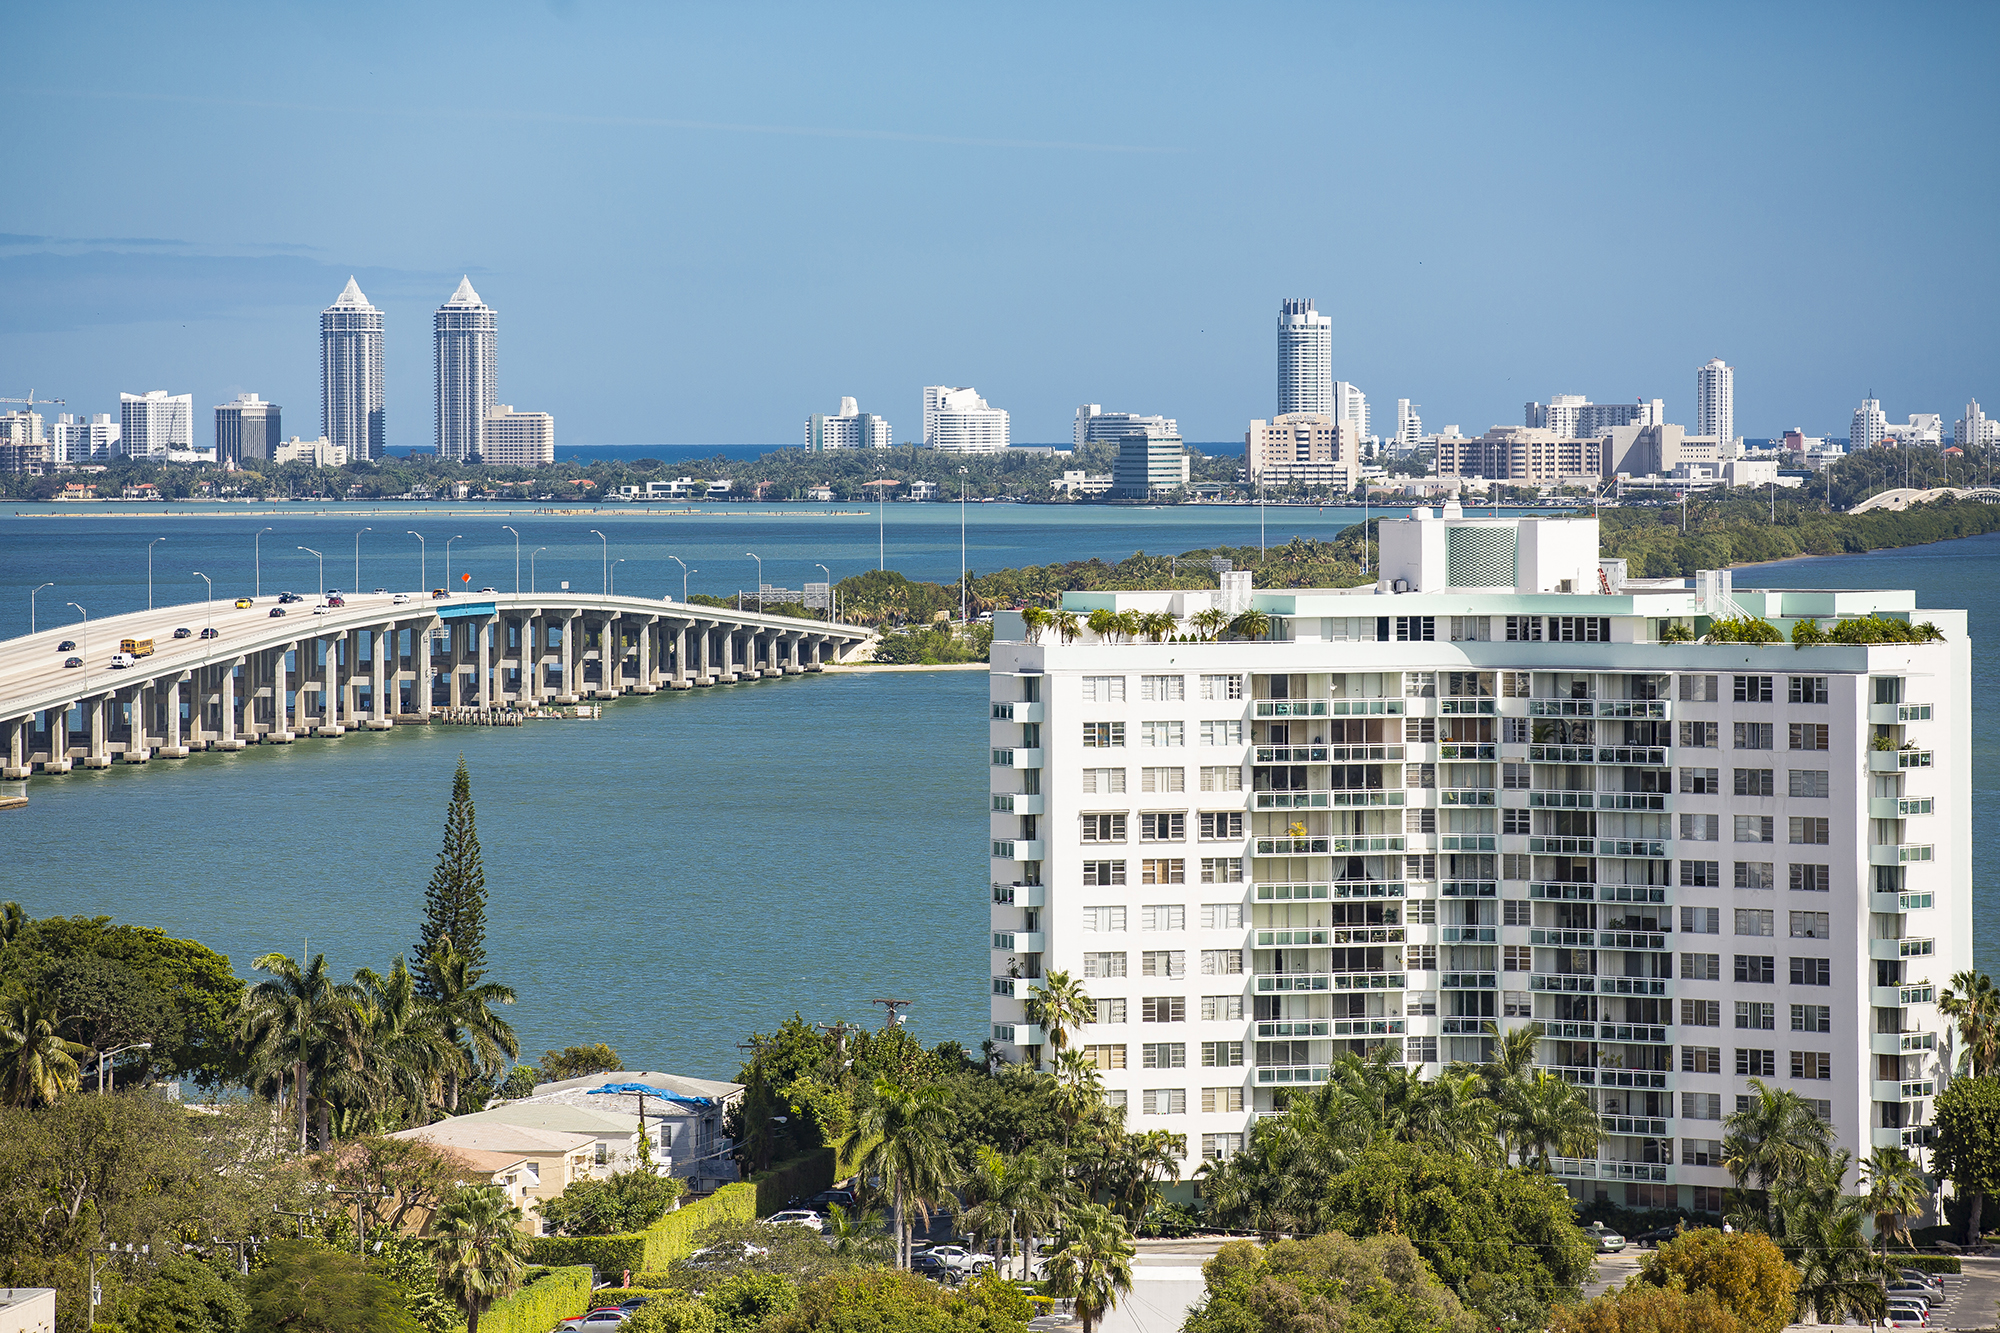 Views of Biscayne Bay and the Midtown Miami skyline.